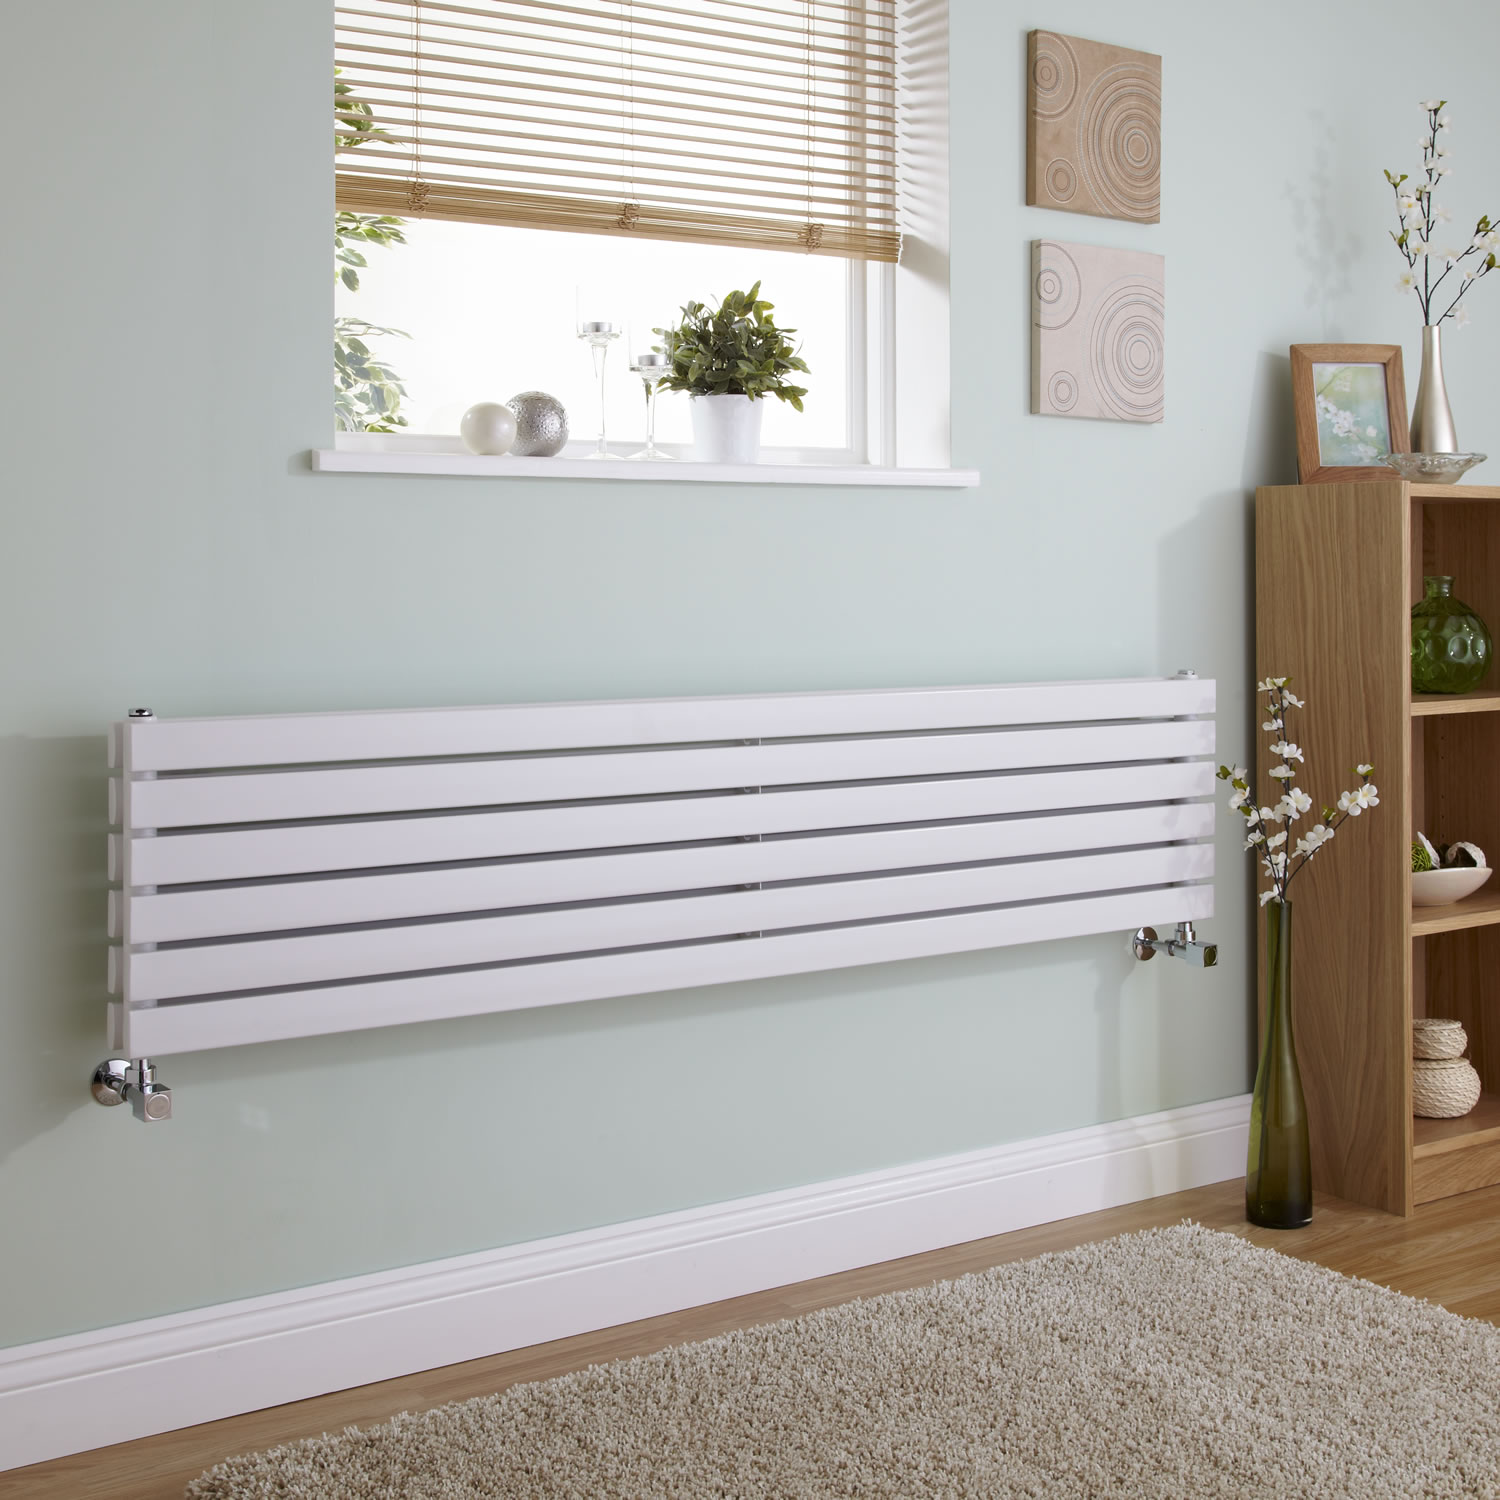 Milano Capri - White Flat Horizontal Designer Radiator 354mm x 1600mm(Double Panel)